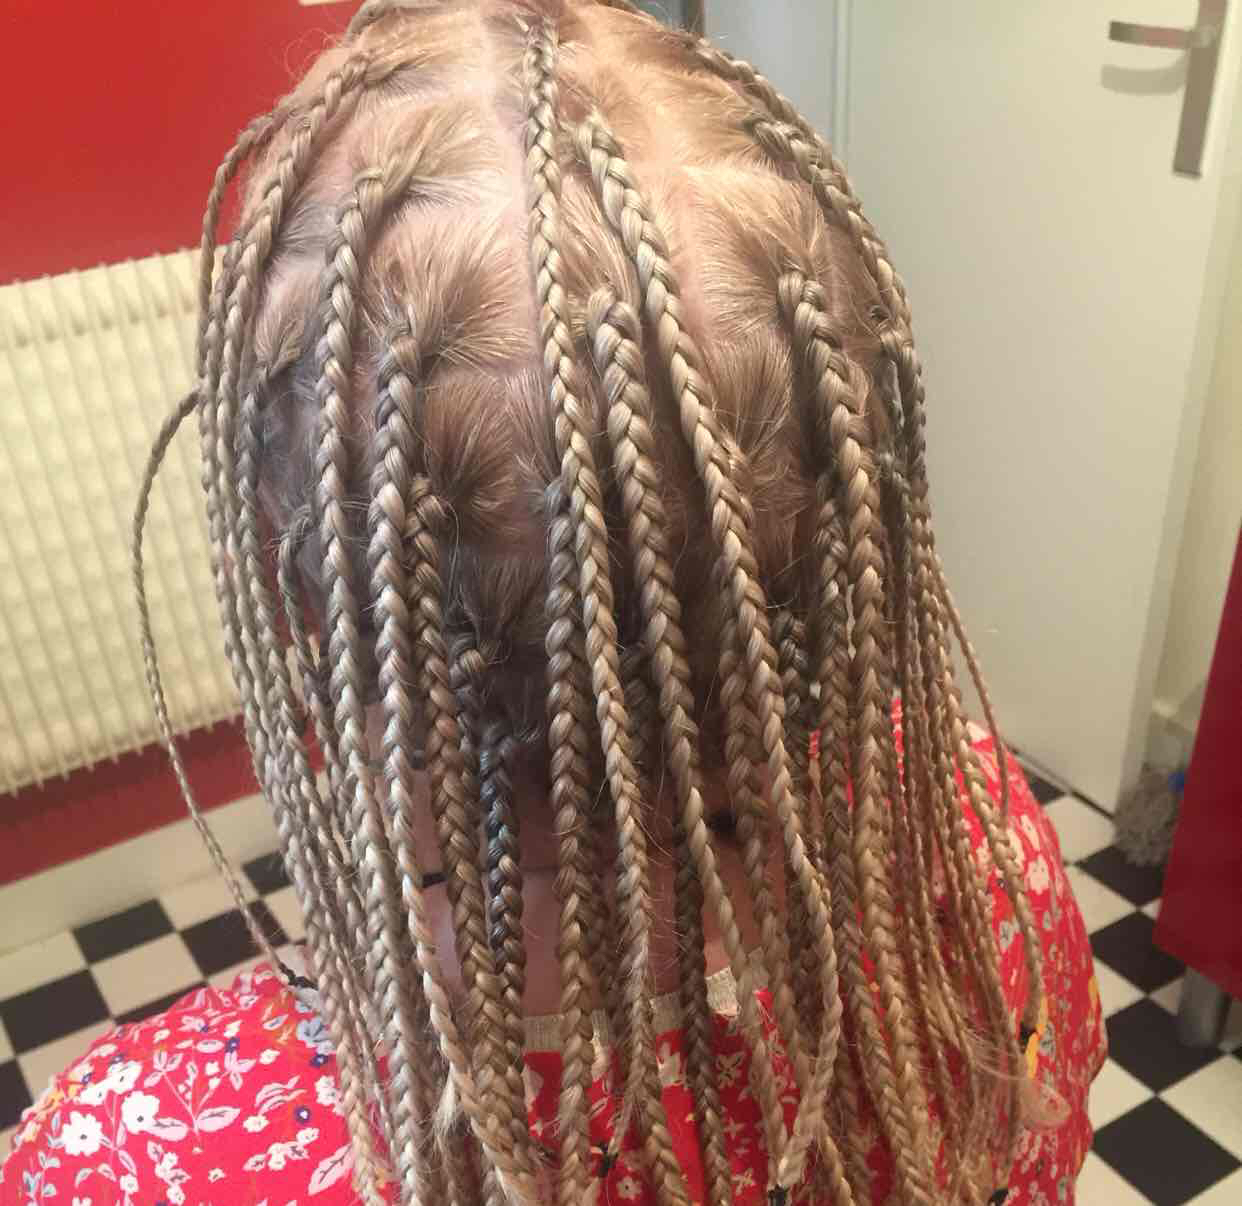 salon de coiffure afro tresse tresses box braids crochet braids vanilles tissages paris 75 77 78 91 92 93 94 95 GZNFVETH